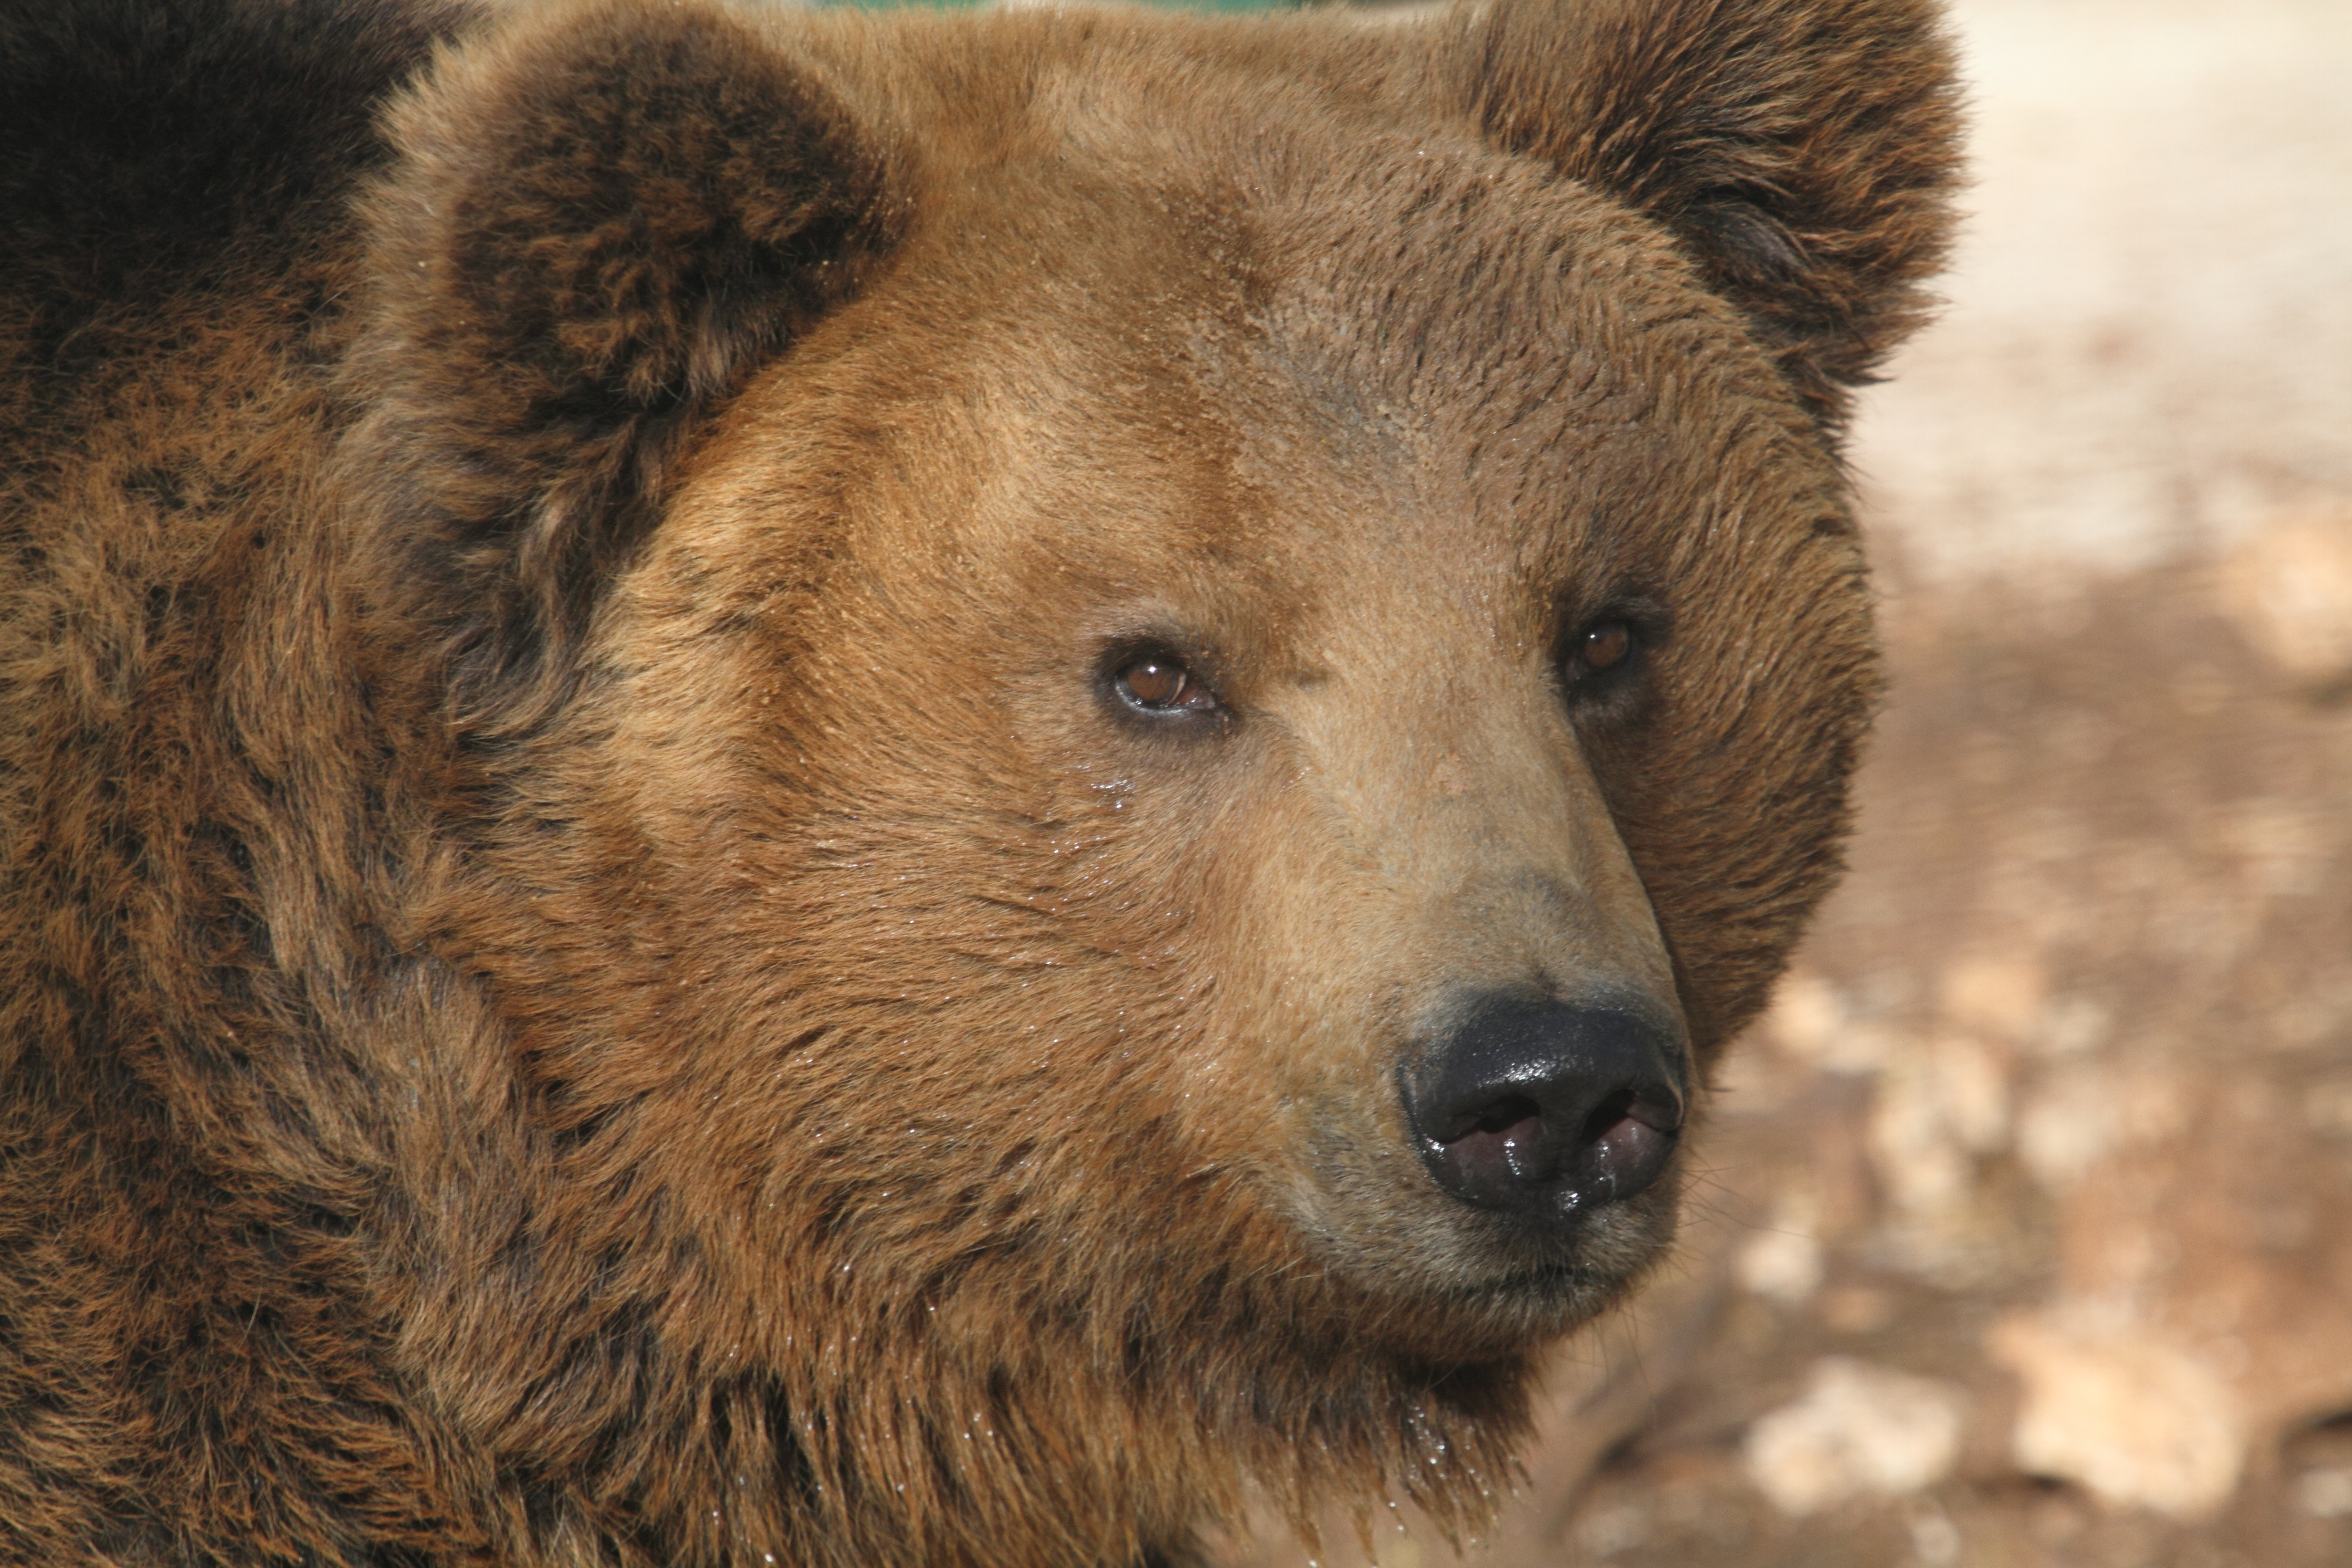 Alpine Brown Bear in Italy's Abruzzo National Park